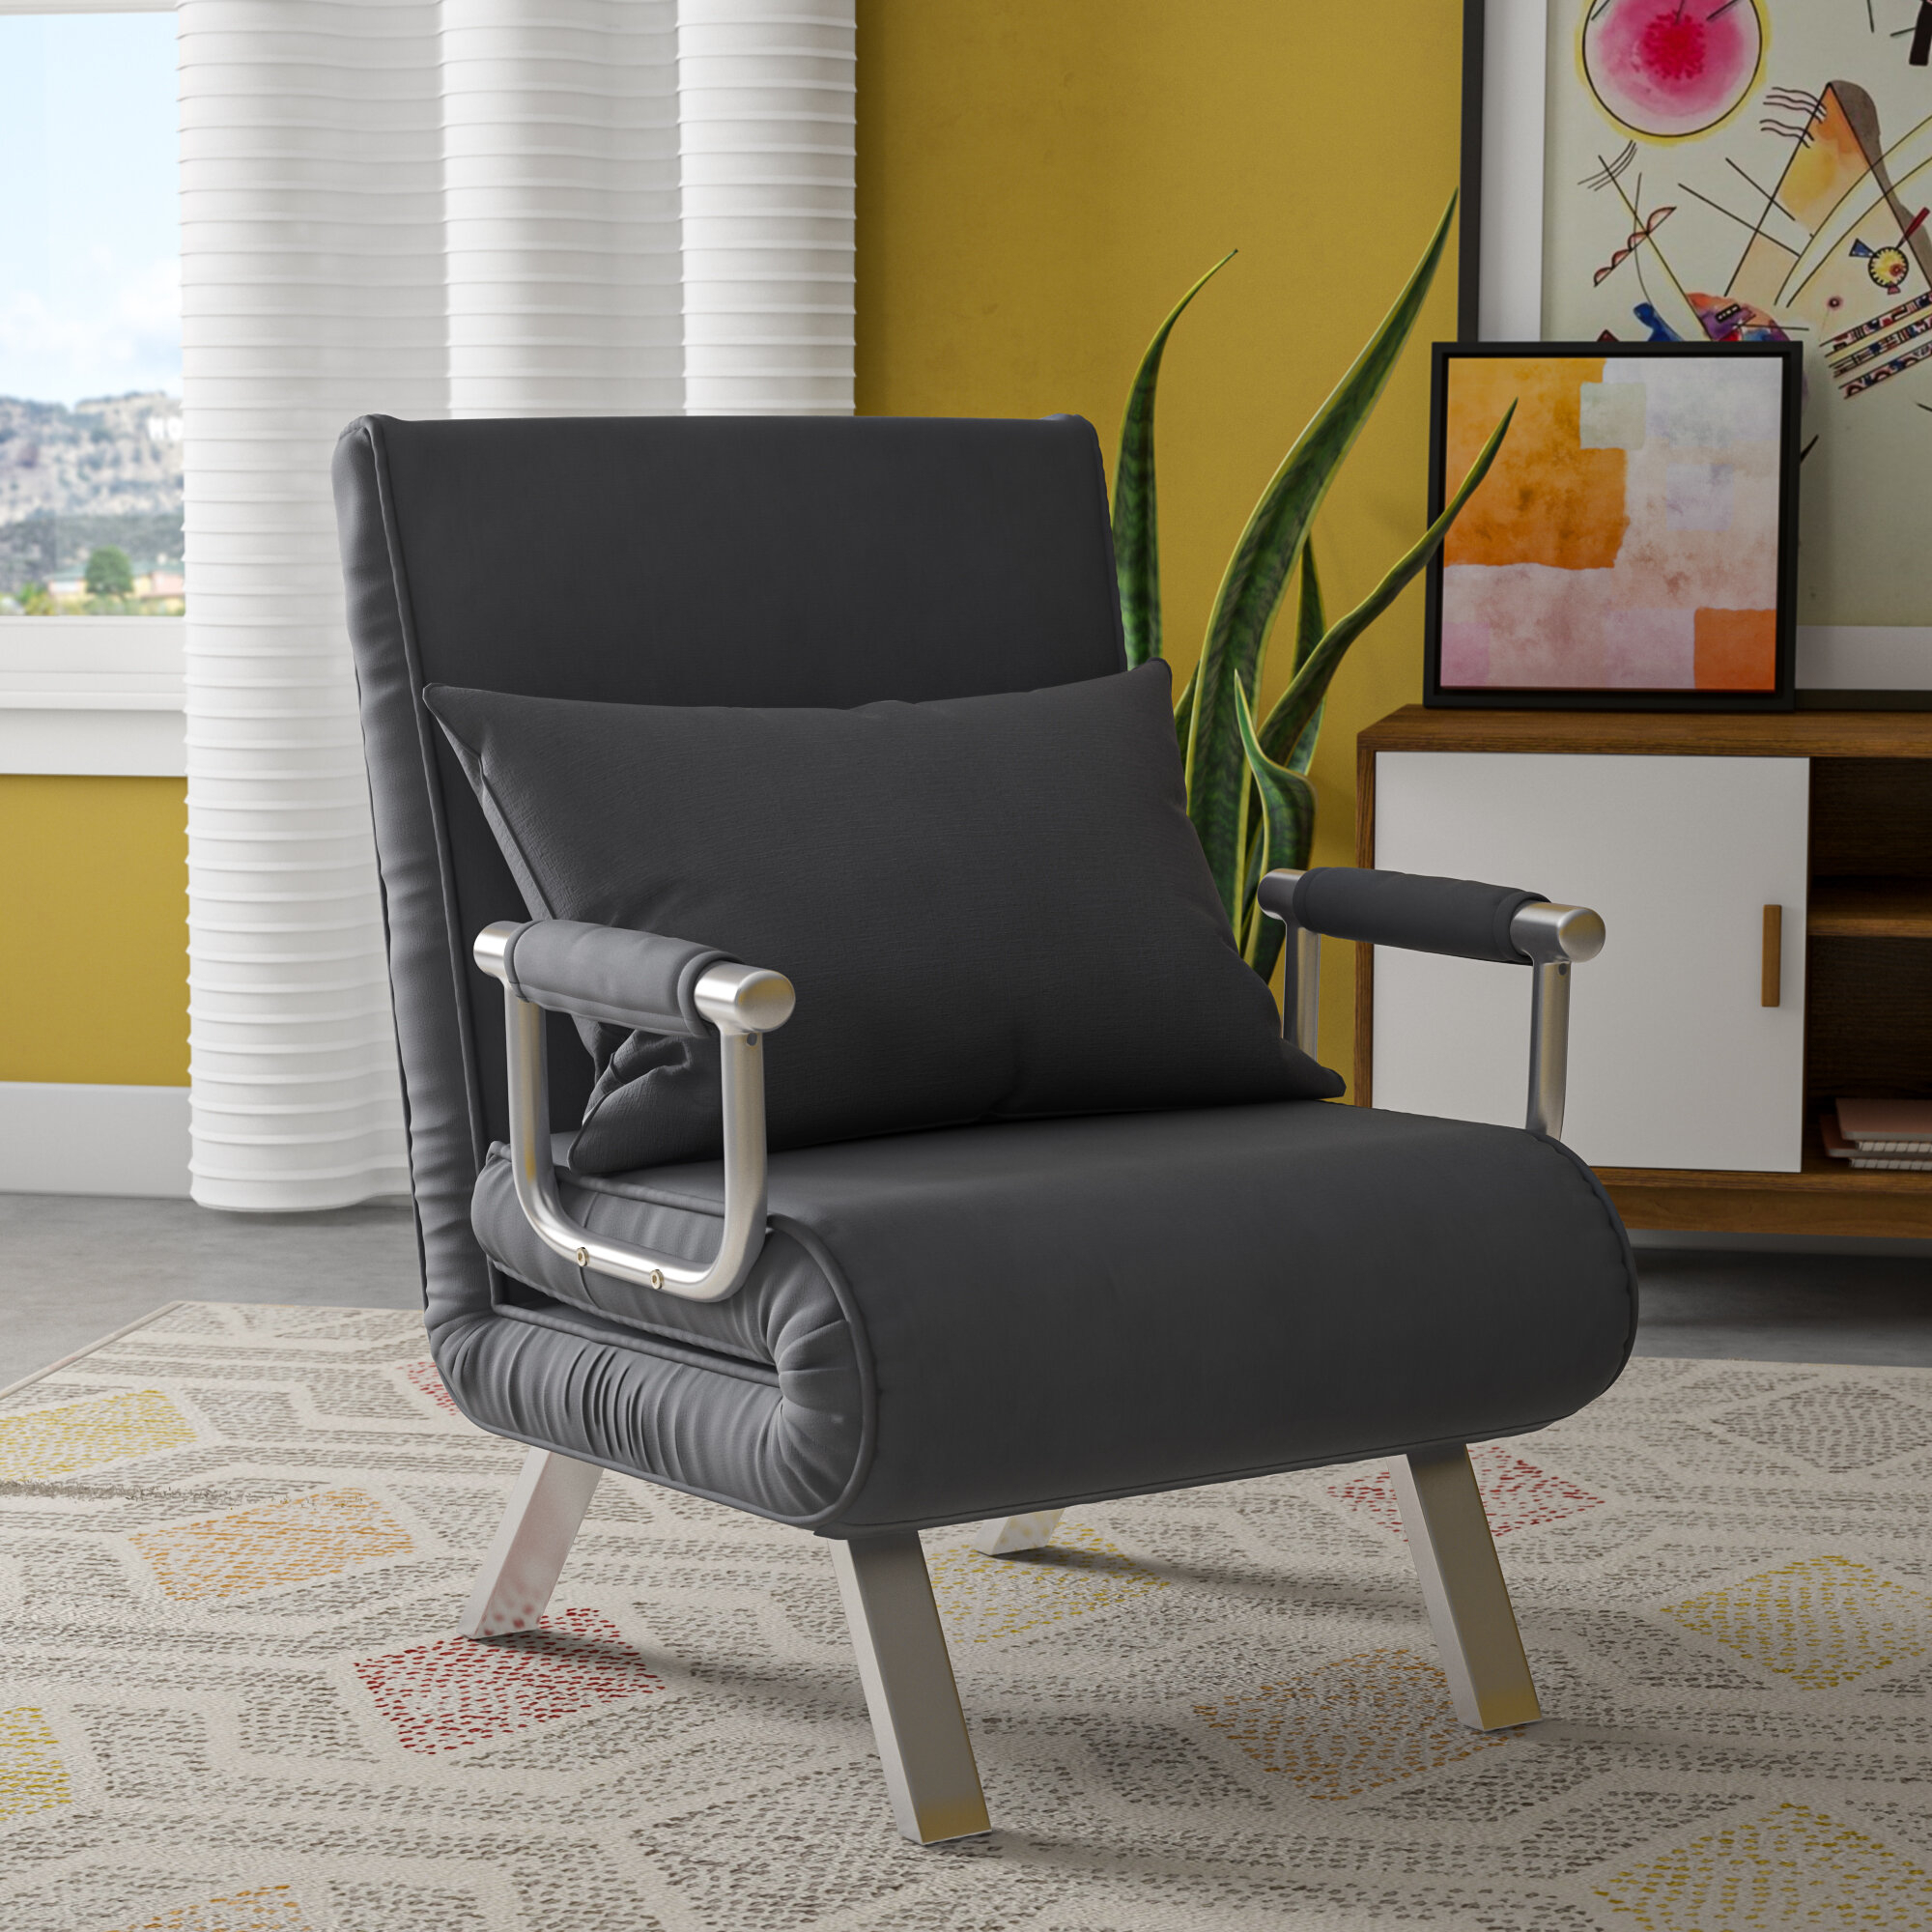 Longoria Convertible Chair Within Perz Tufted Faux Leather Convertible Chairs (View 15 of 15)